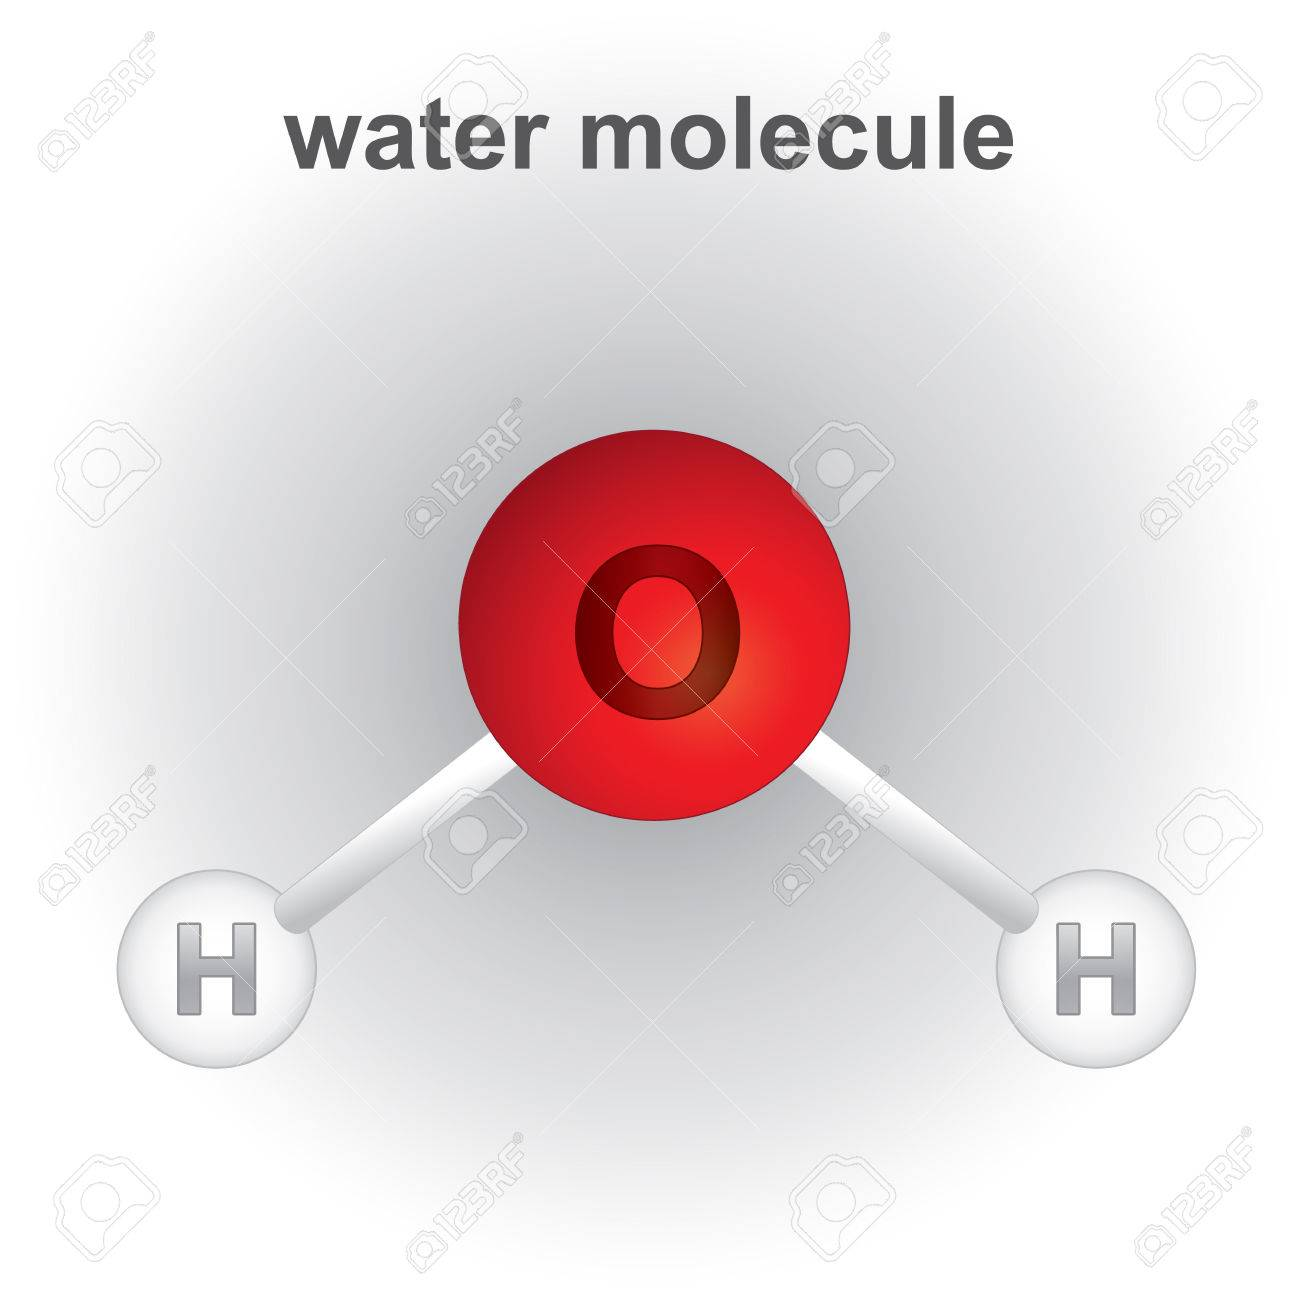 Illustration representing structure and composition of the water molecule chemical. ideal for educational books and institutional materials - 51237705